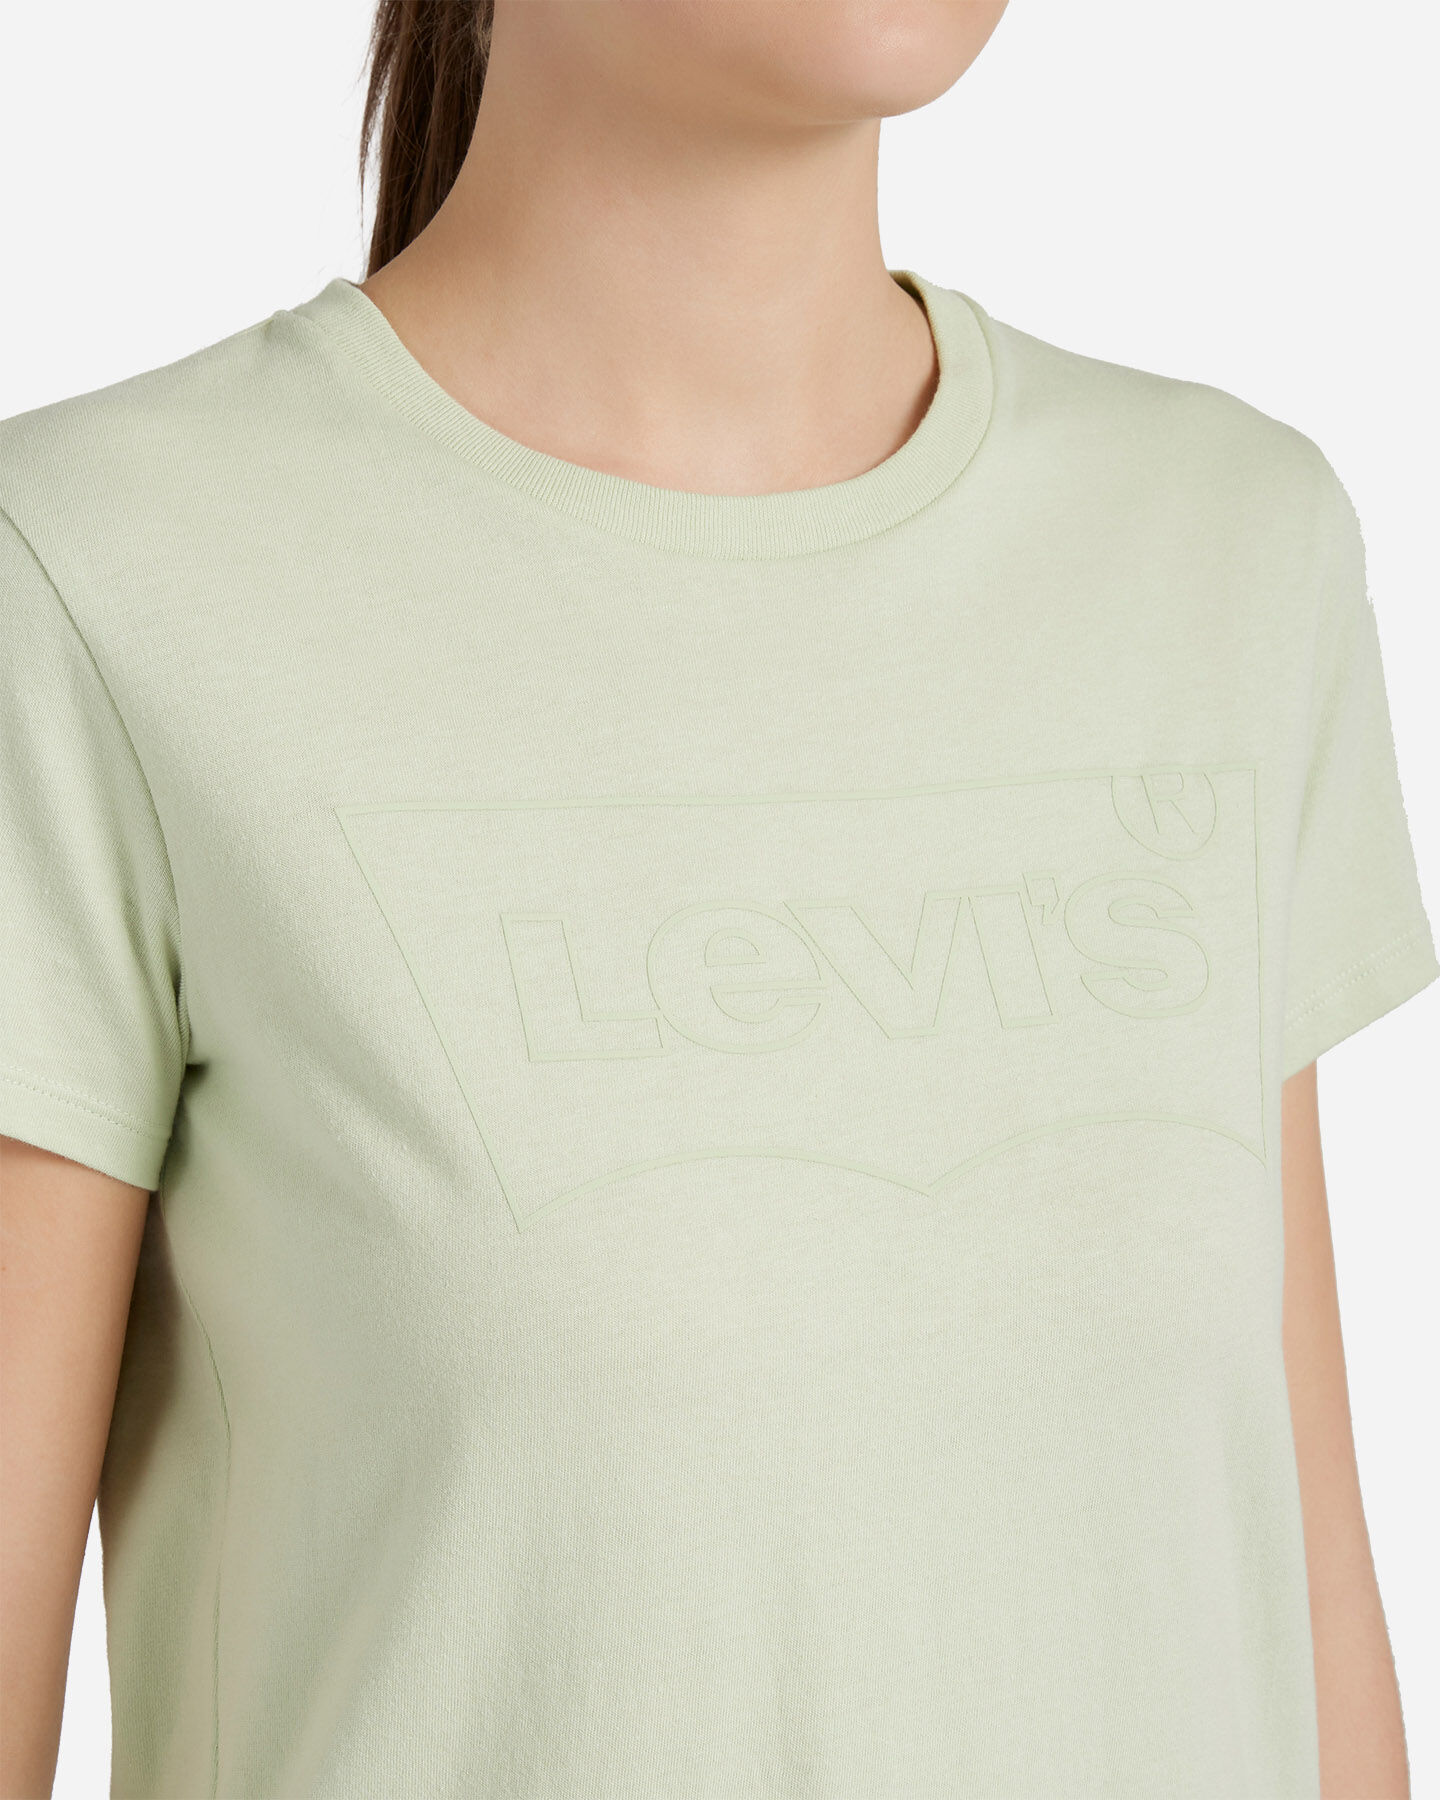 T-Shirt LEVI'S LOGO BATWING OUTLINE W S4088775 scatto 4